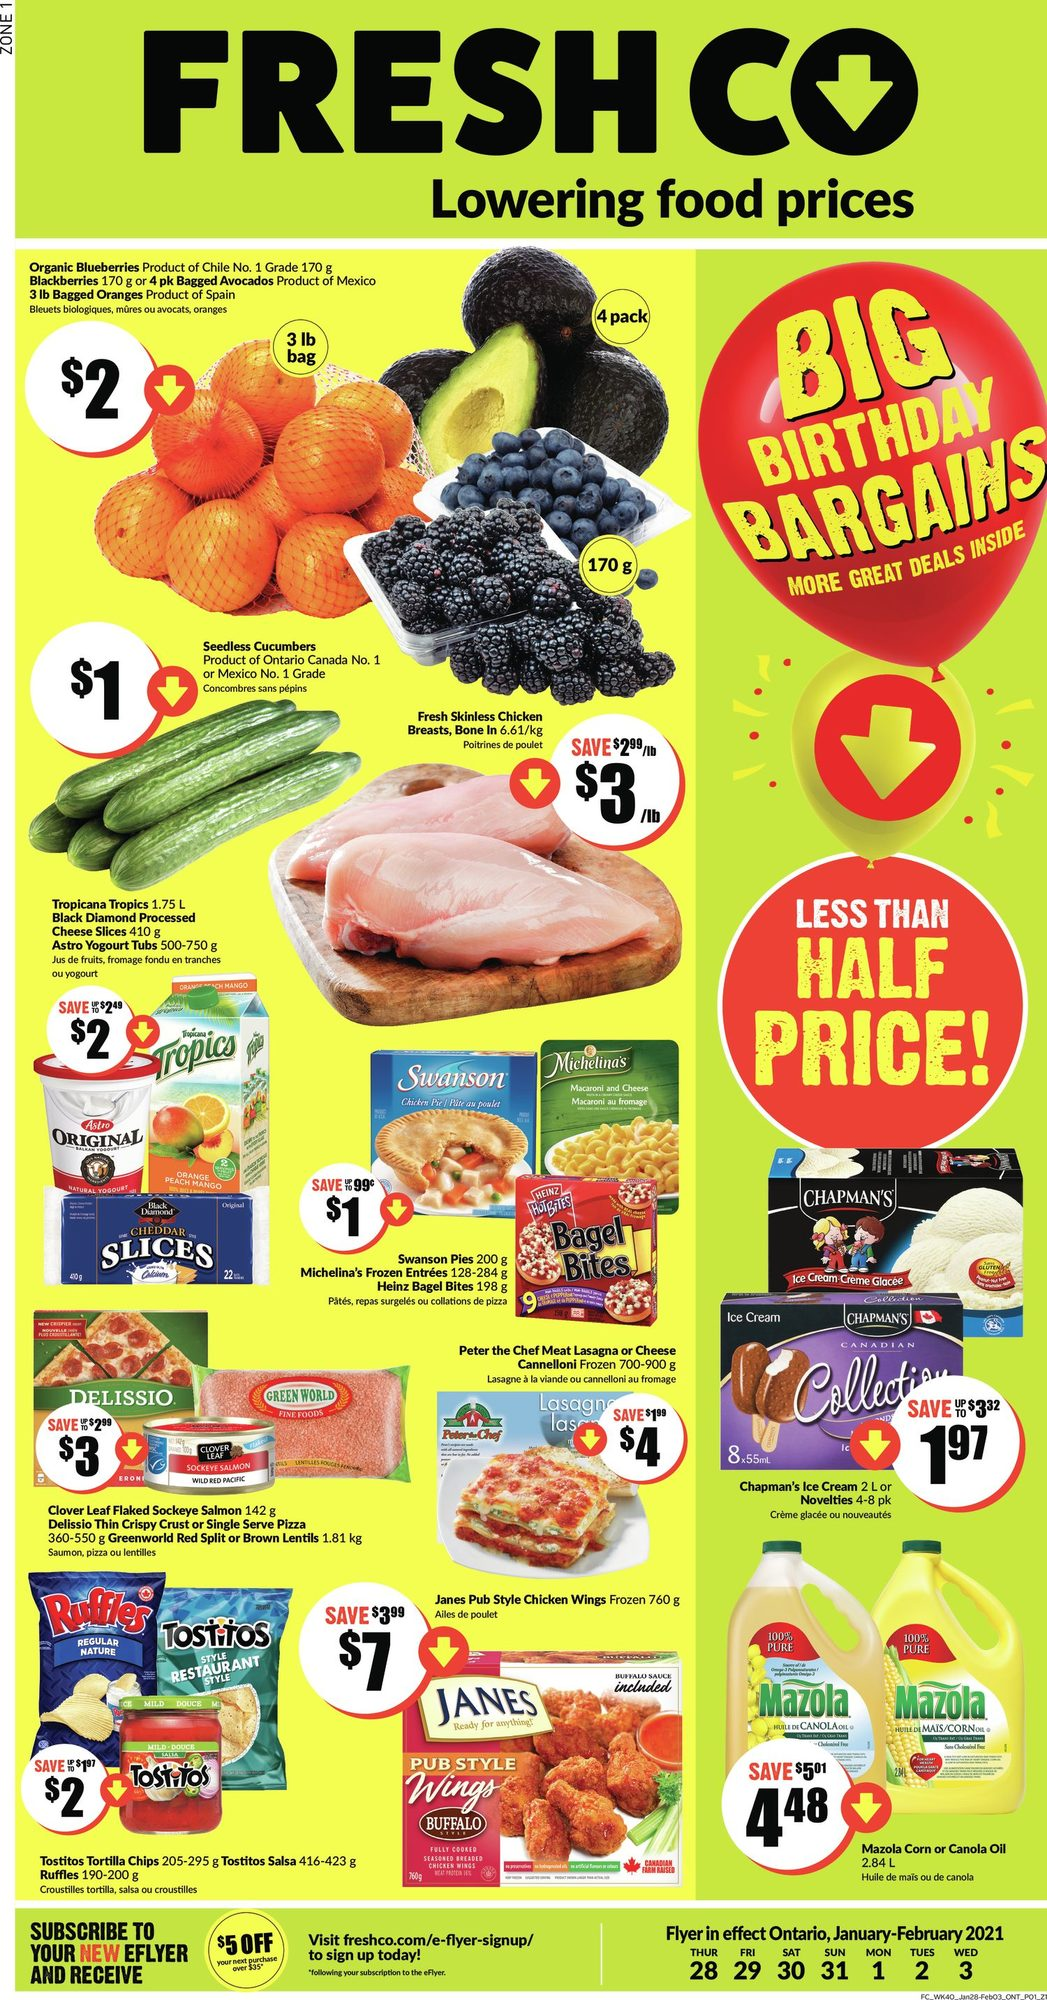 FreshCo - Weekly Flyer Specials